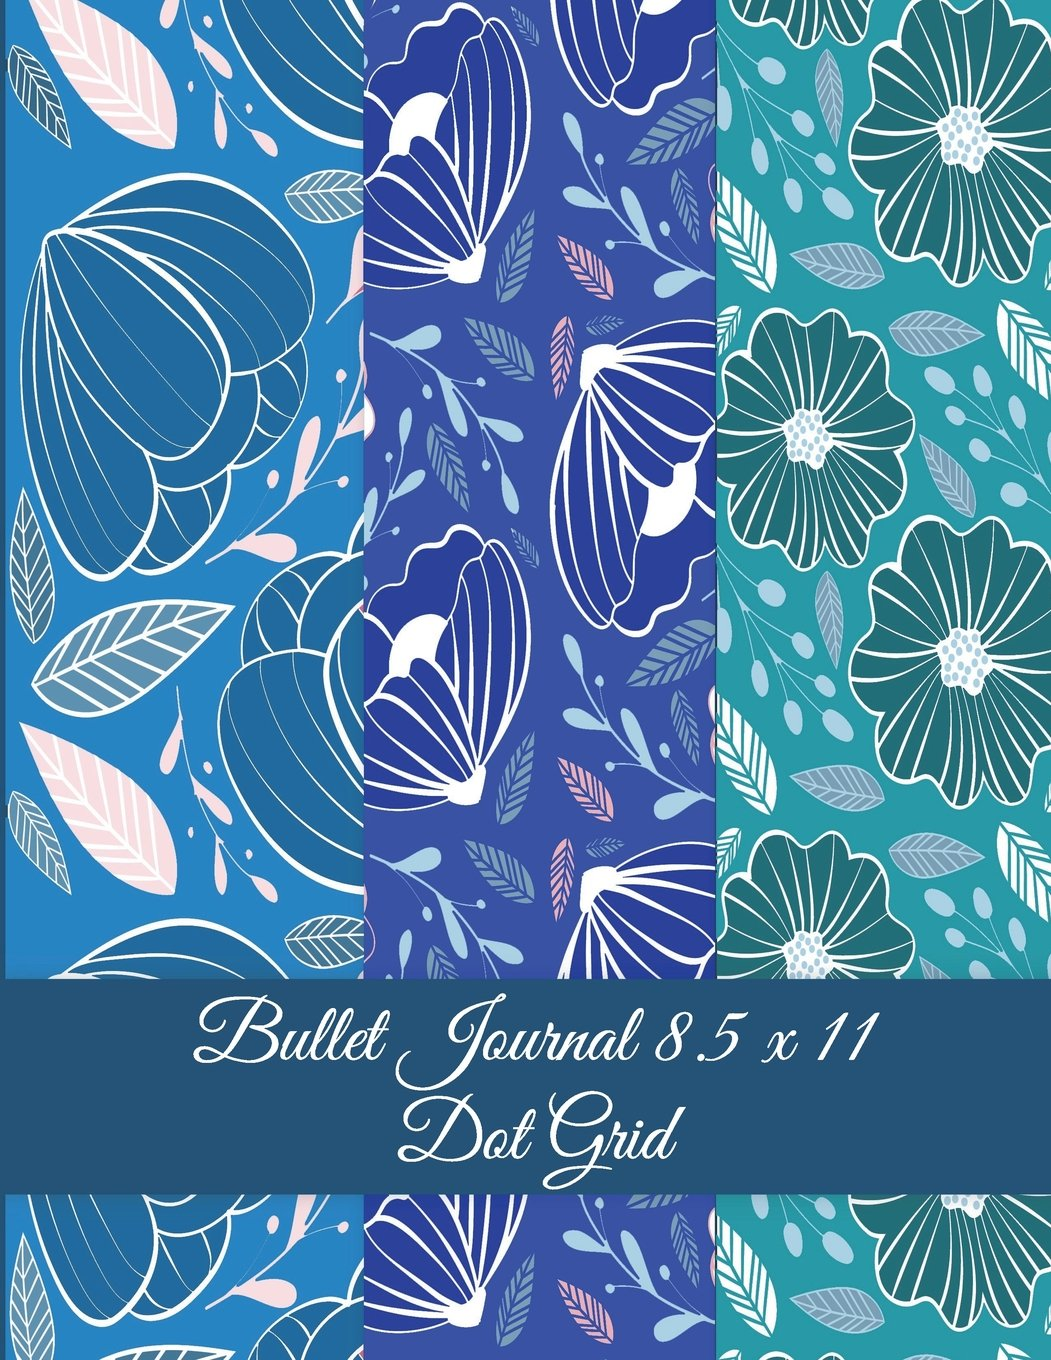 """Download Bullet Journal 8.5 x 11 Dot Grid: Blue Color Floral Design, Bullet Journal, Dot Grid Sketchbook Journal Large Size 8.5"""" x 11"""" Daily Notebook to Write in Dot Grid Notebook pdf epub"""